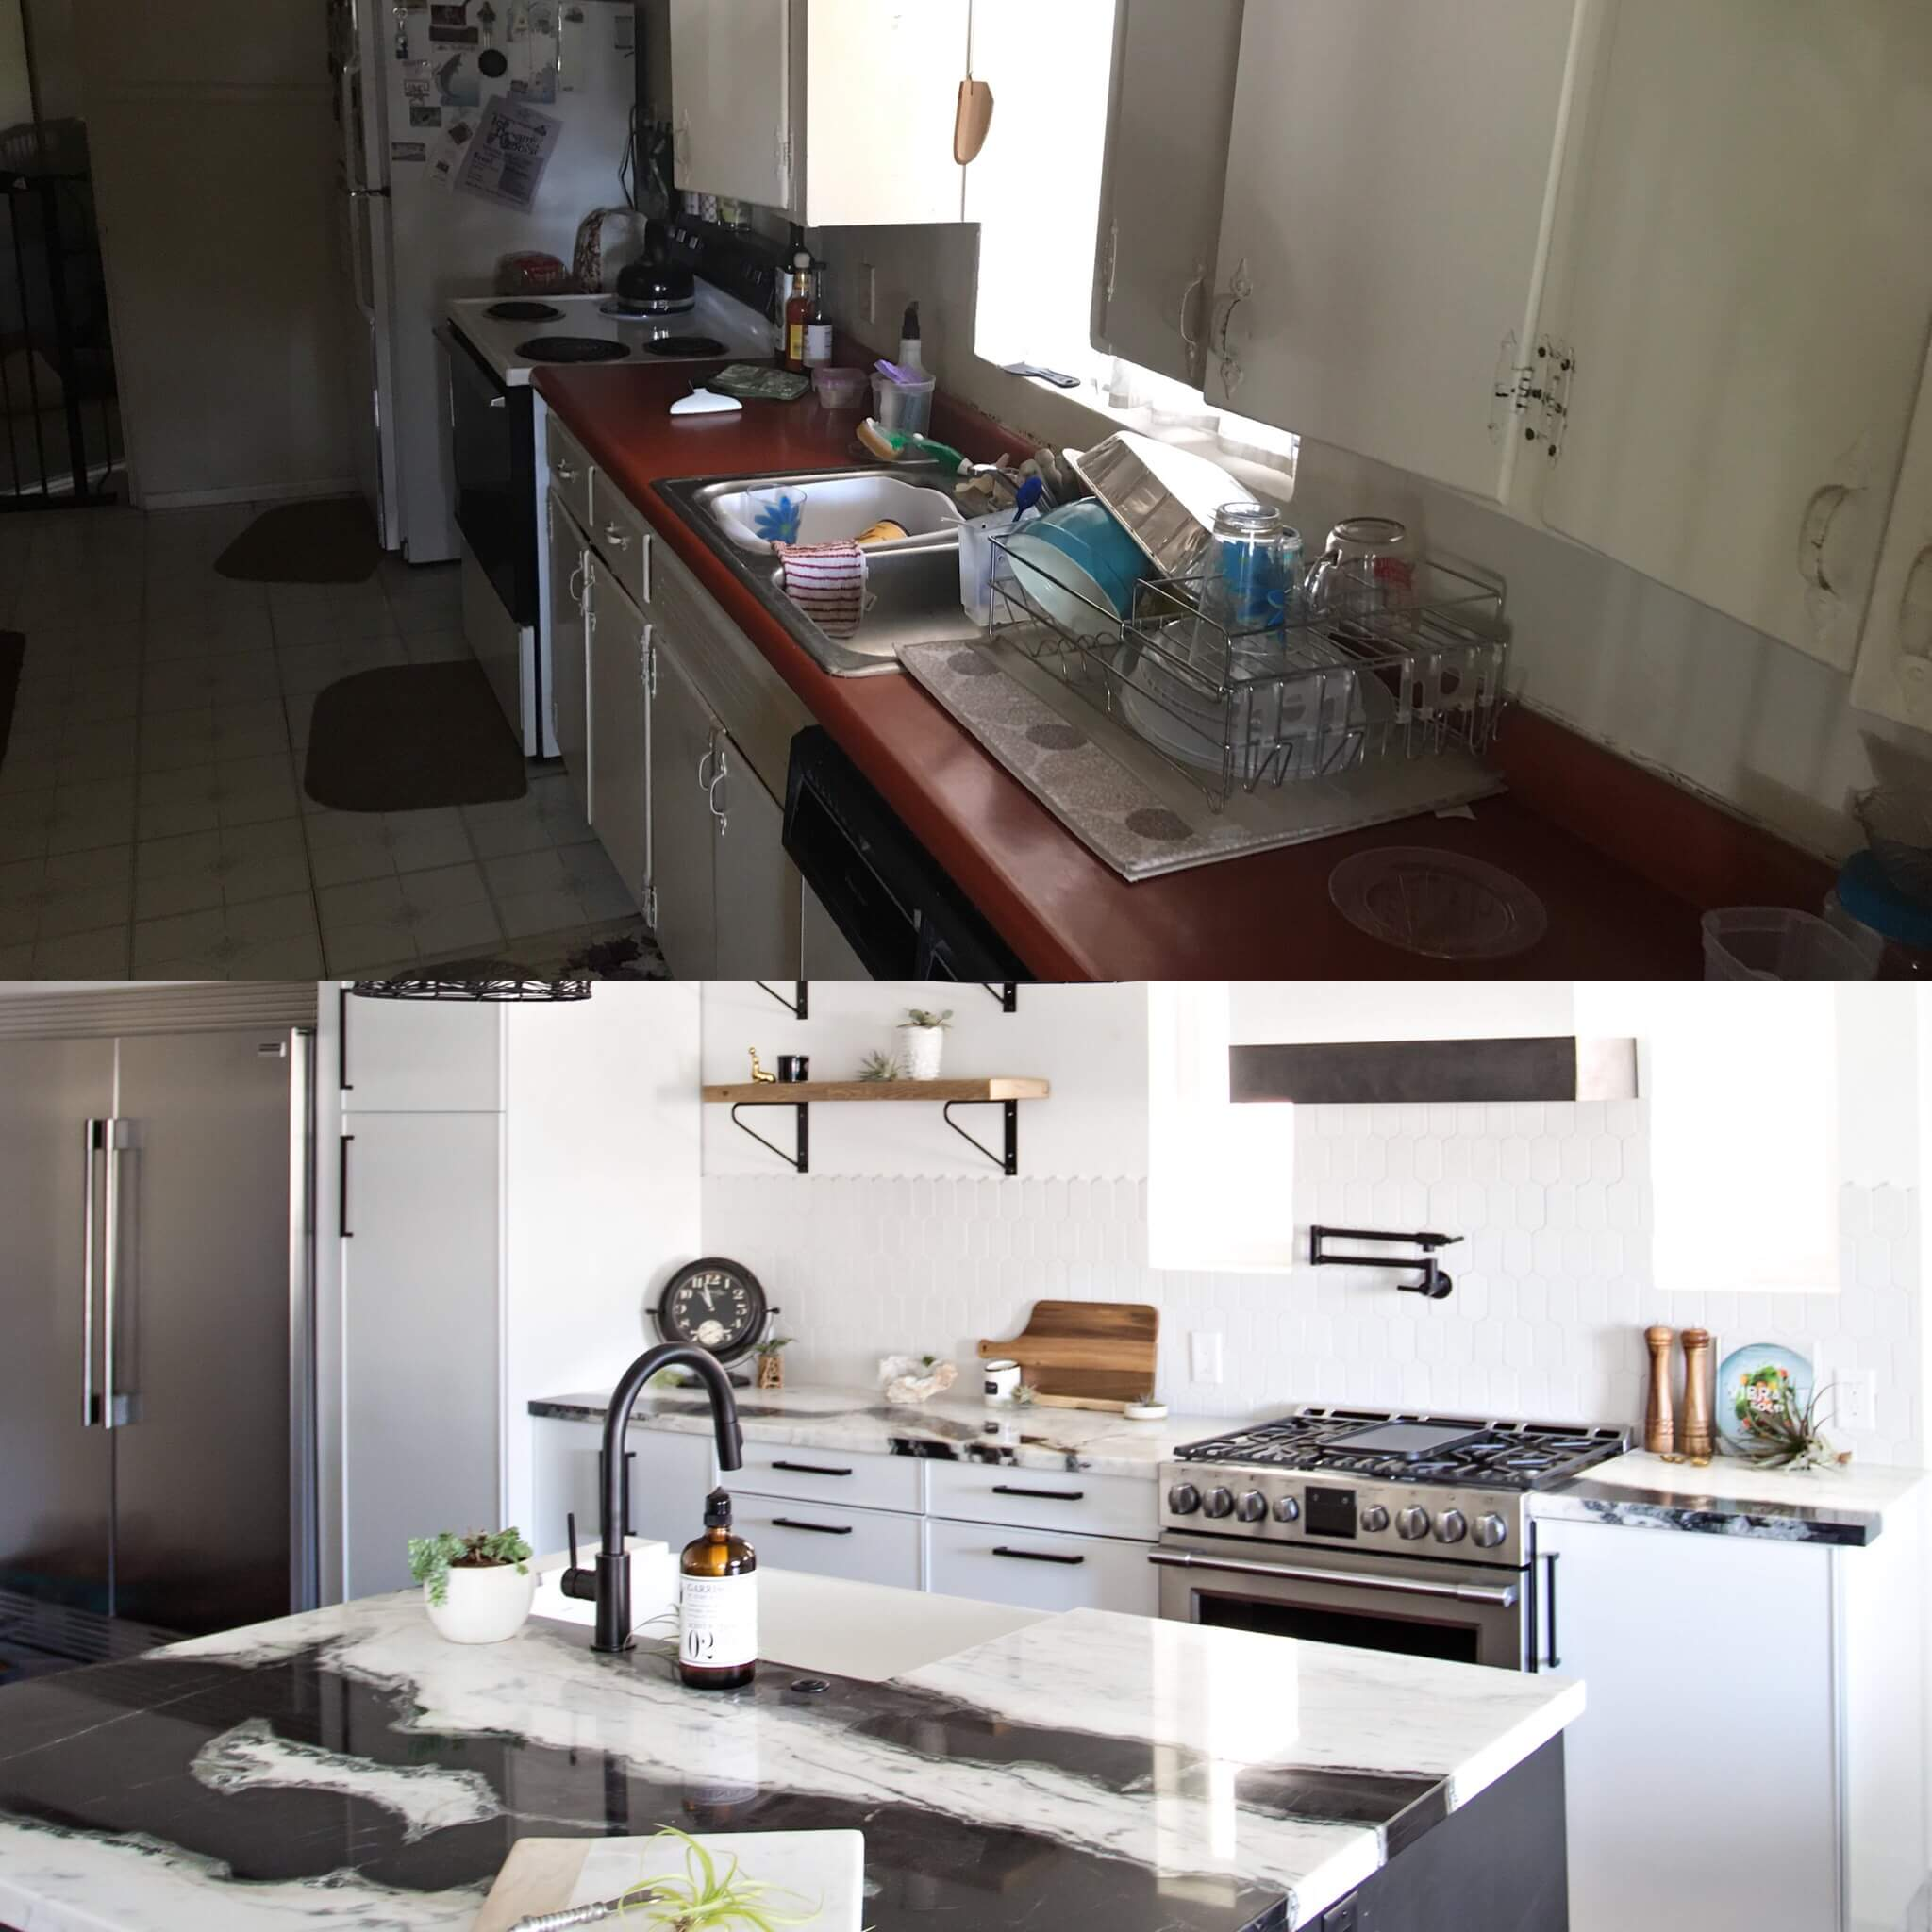 Sonoran Desert Living - Mitchell Before and Aftre .jpg